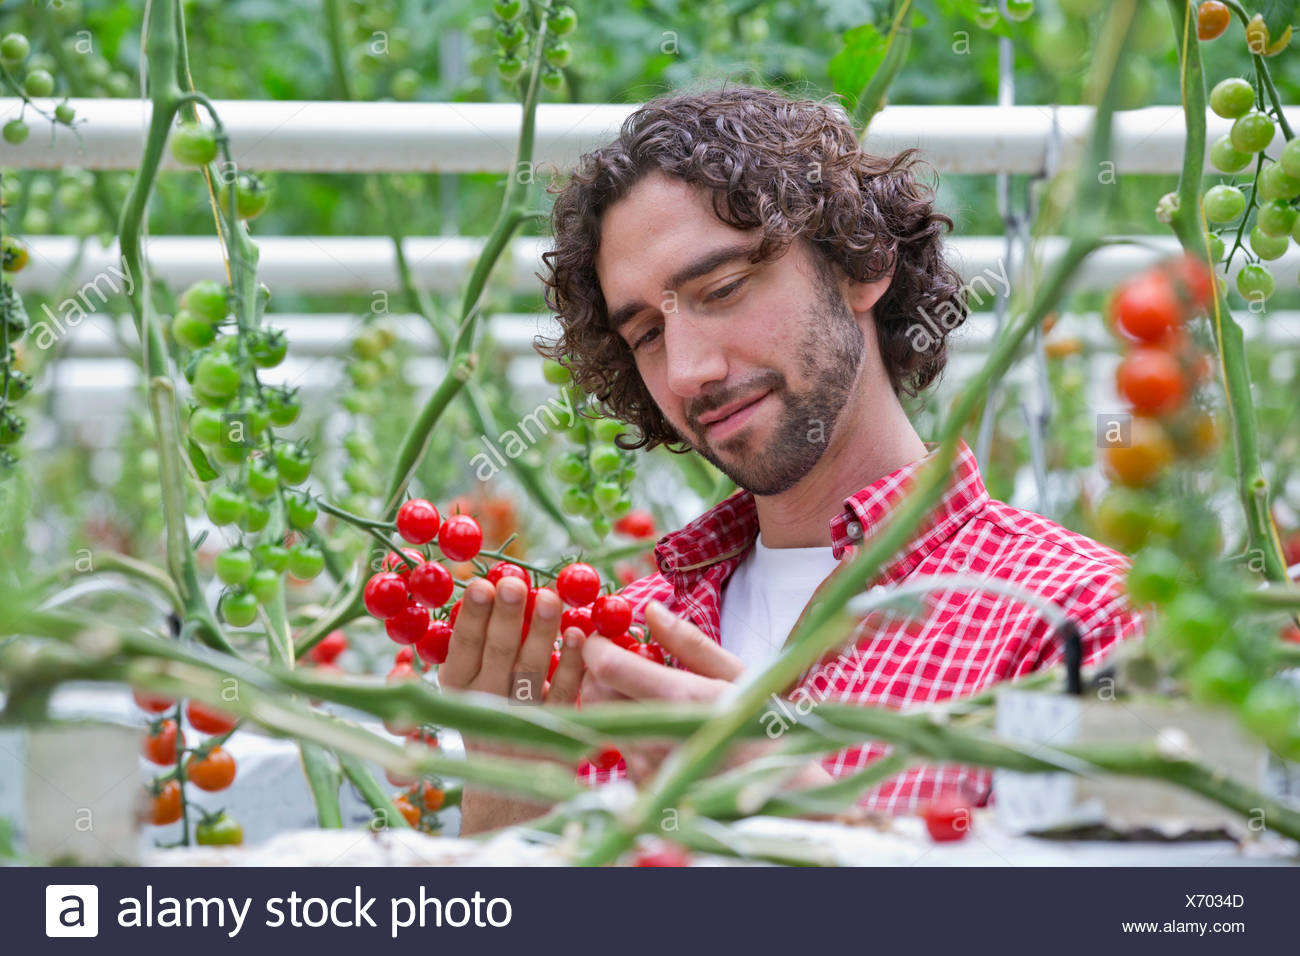 Grower examining ripe red vine tomatoes - Stock Image